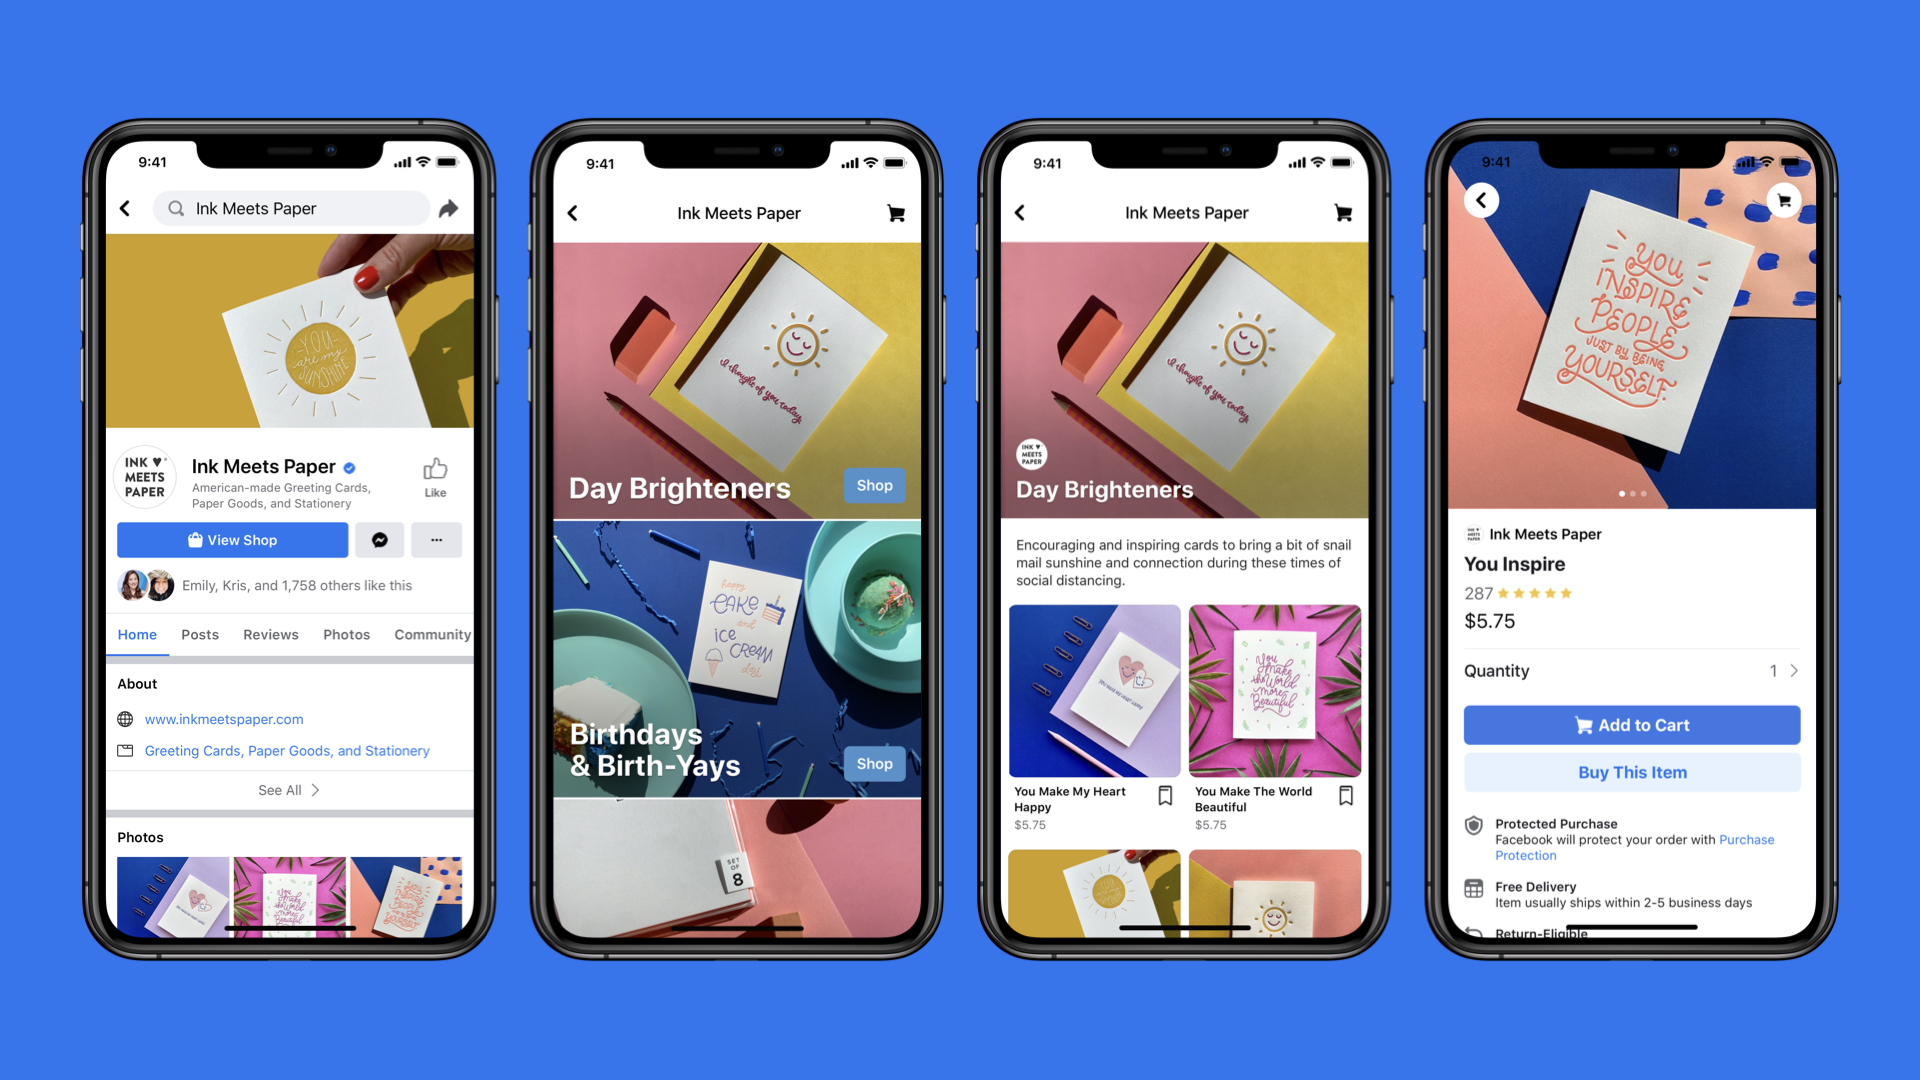 Facebook Shops turn business pages into online stores | Engadget